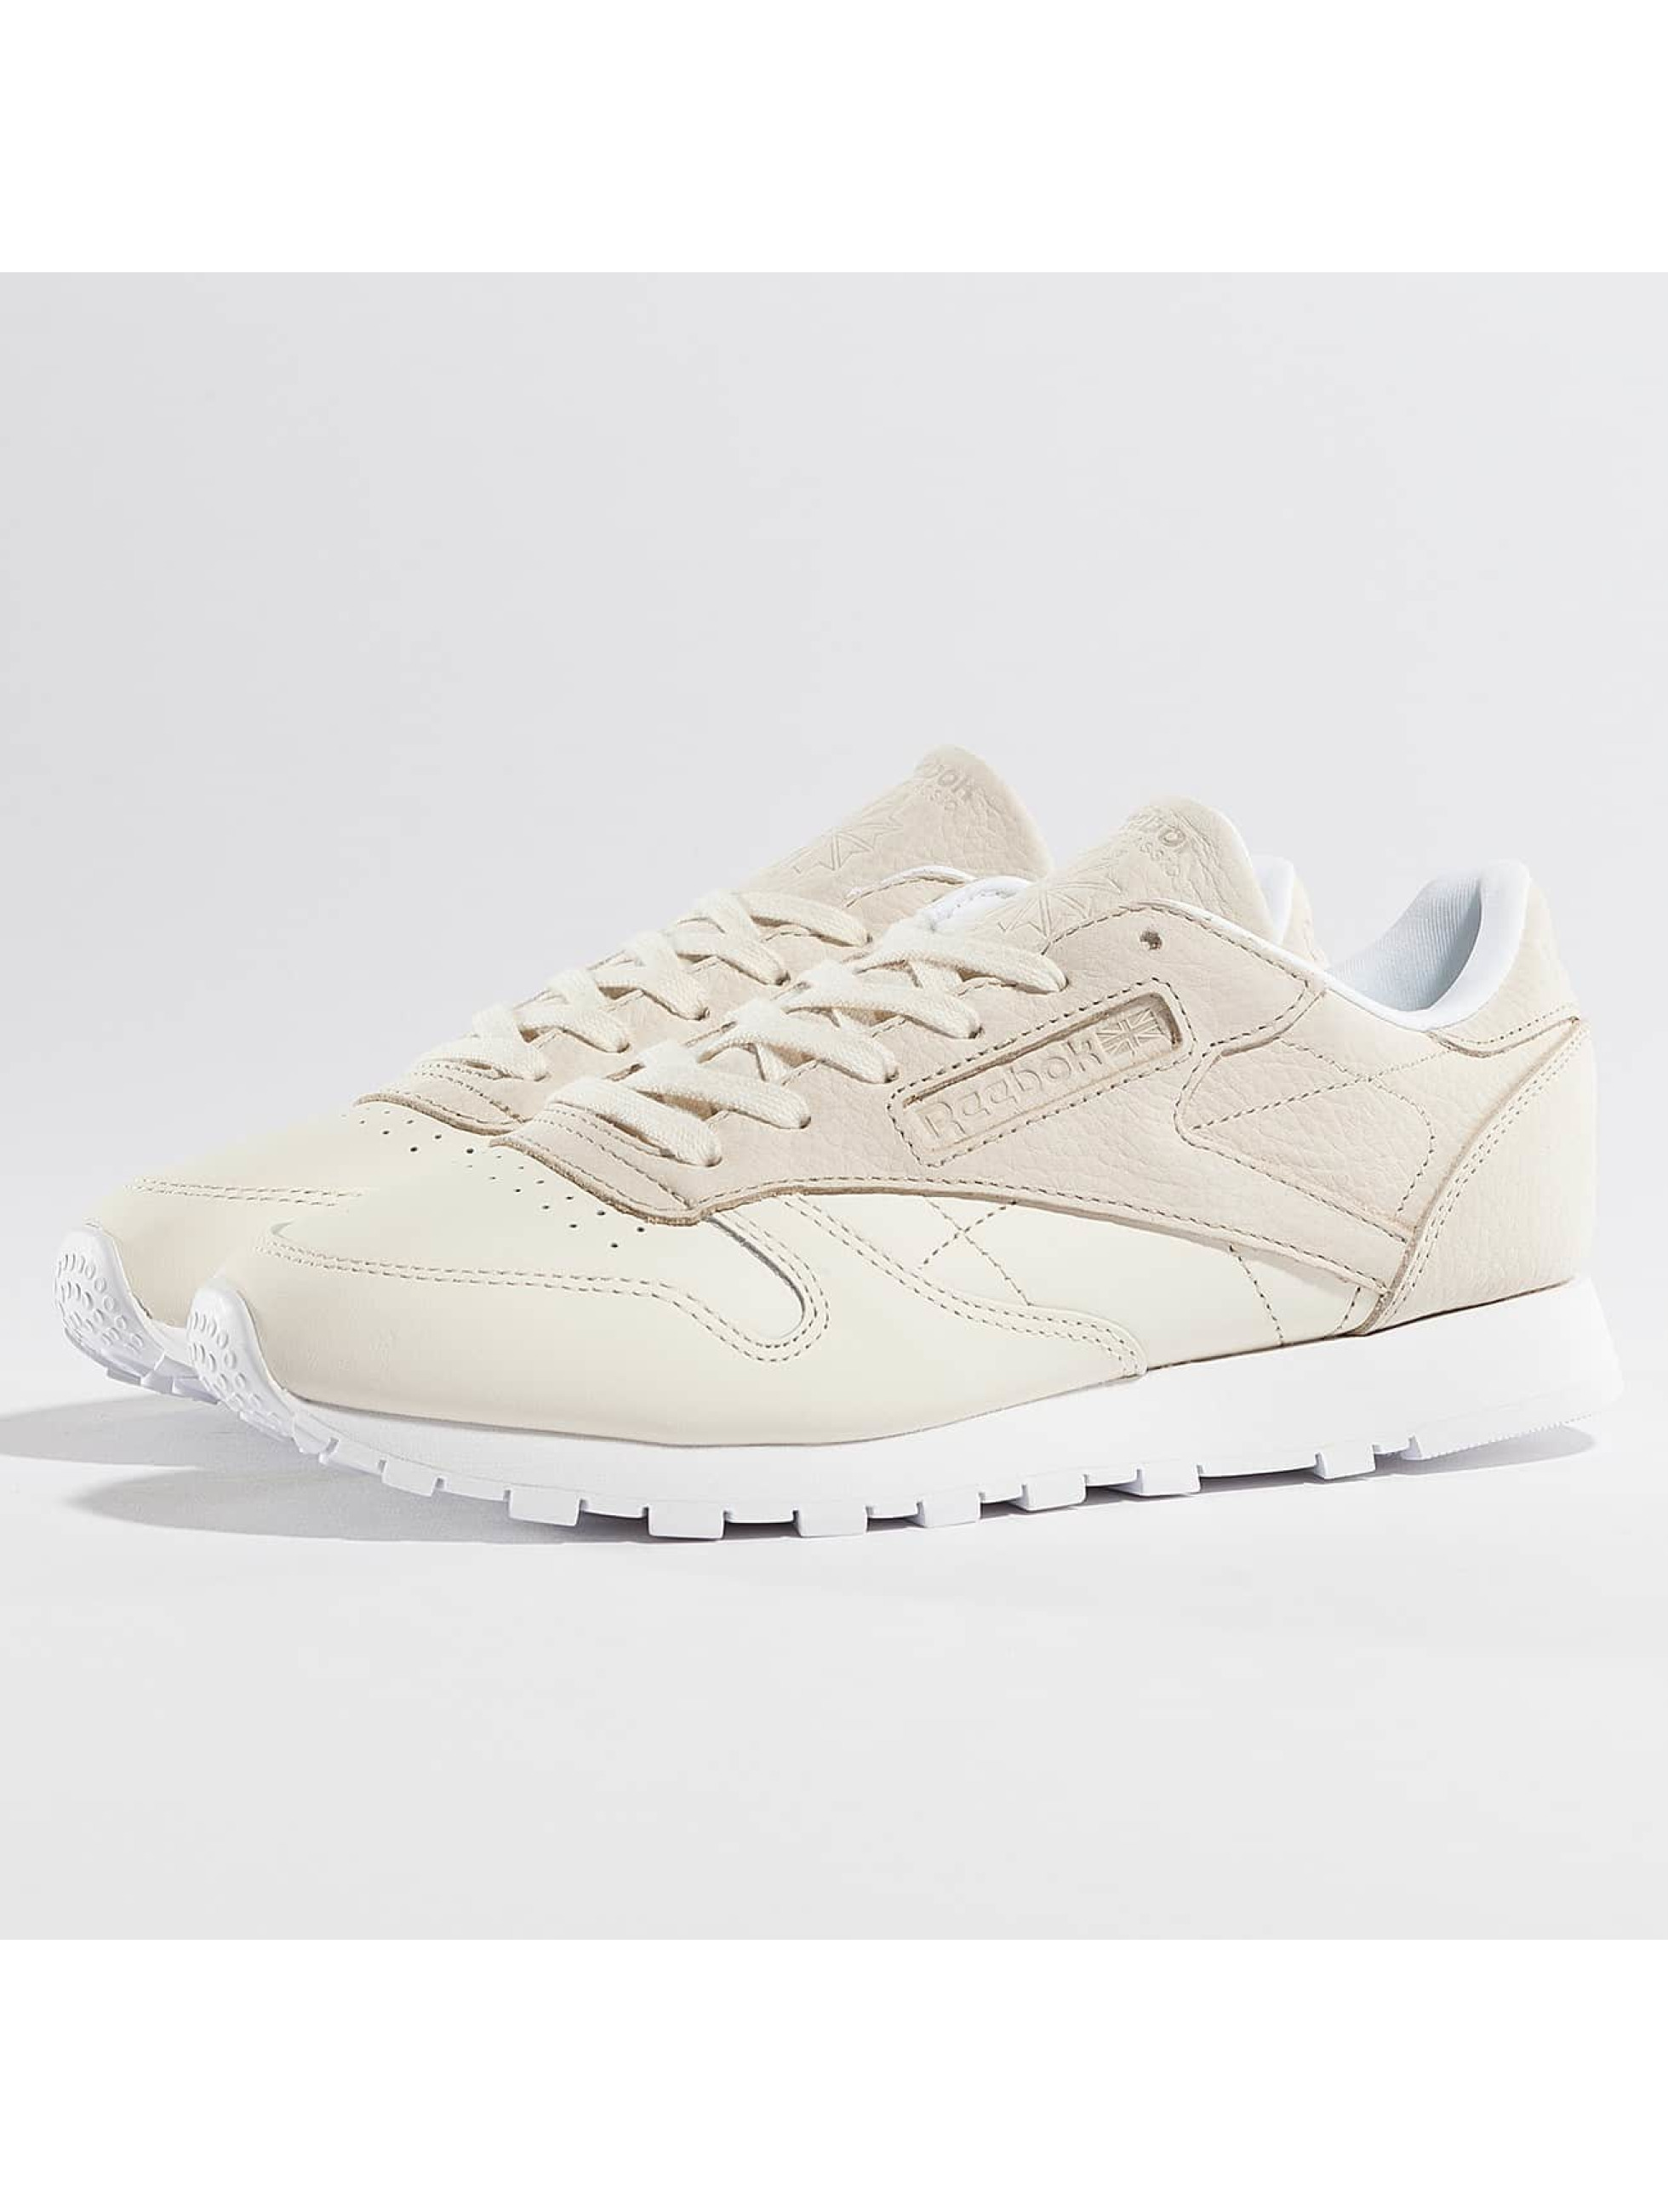 Product of the Week: Reebok Classic Leather mit